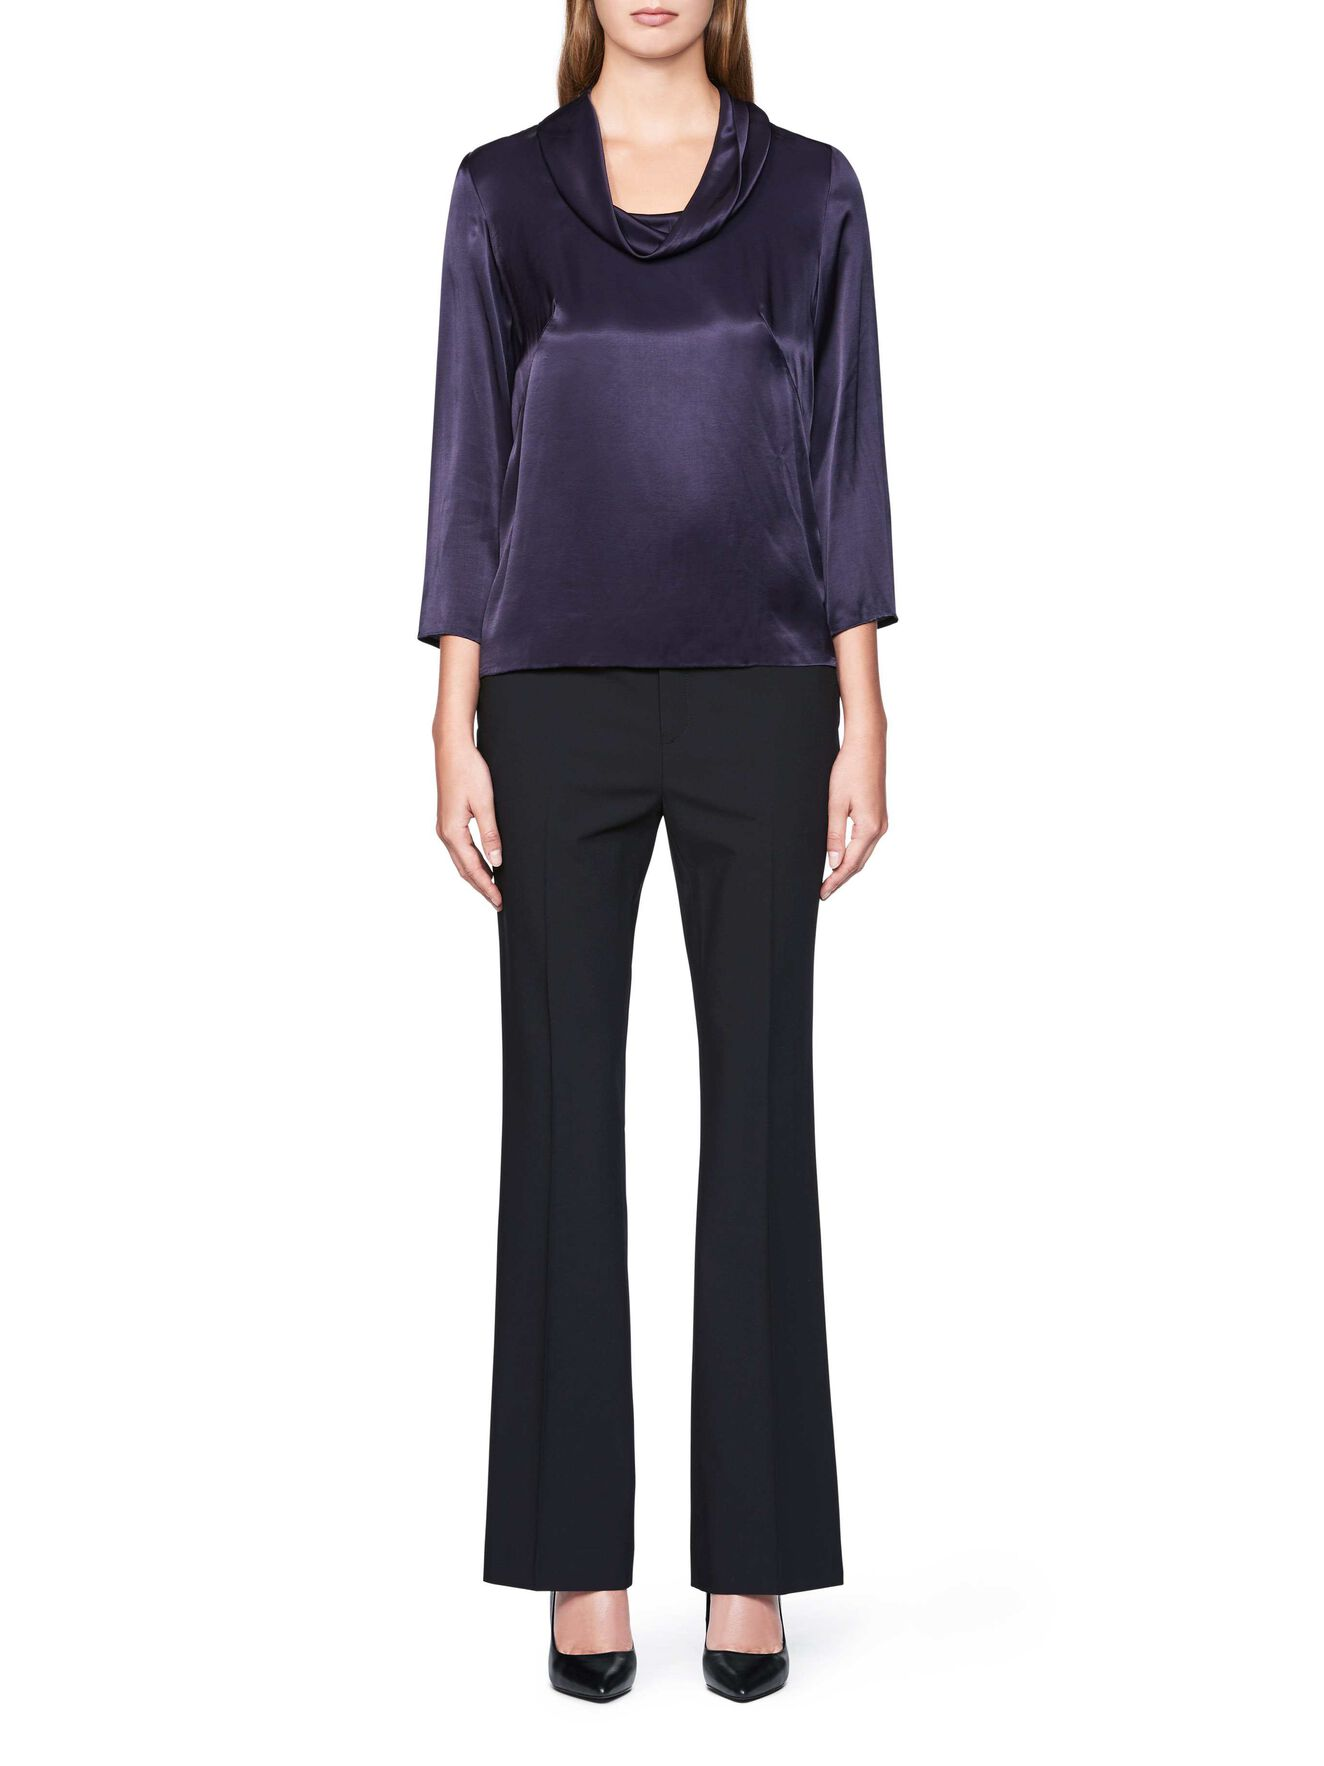 SASSA BLOUSE in Deep Well from Tiger of Sweden